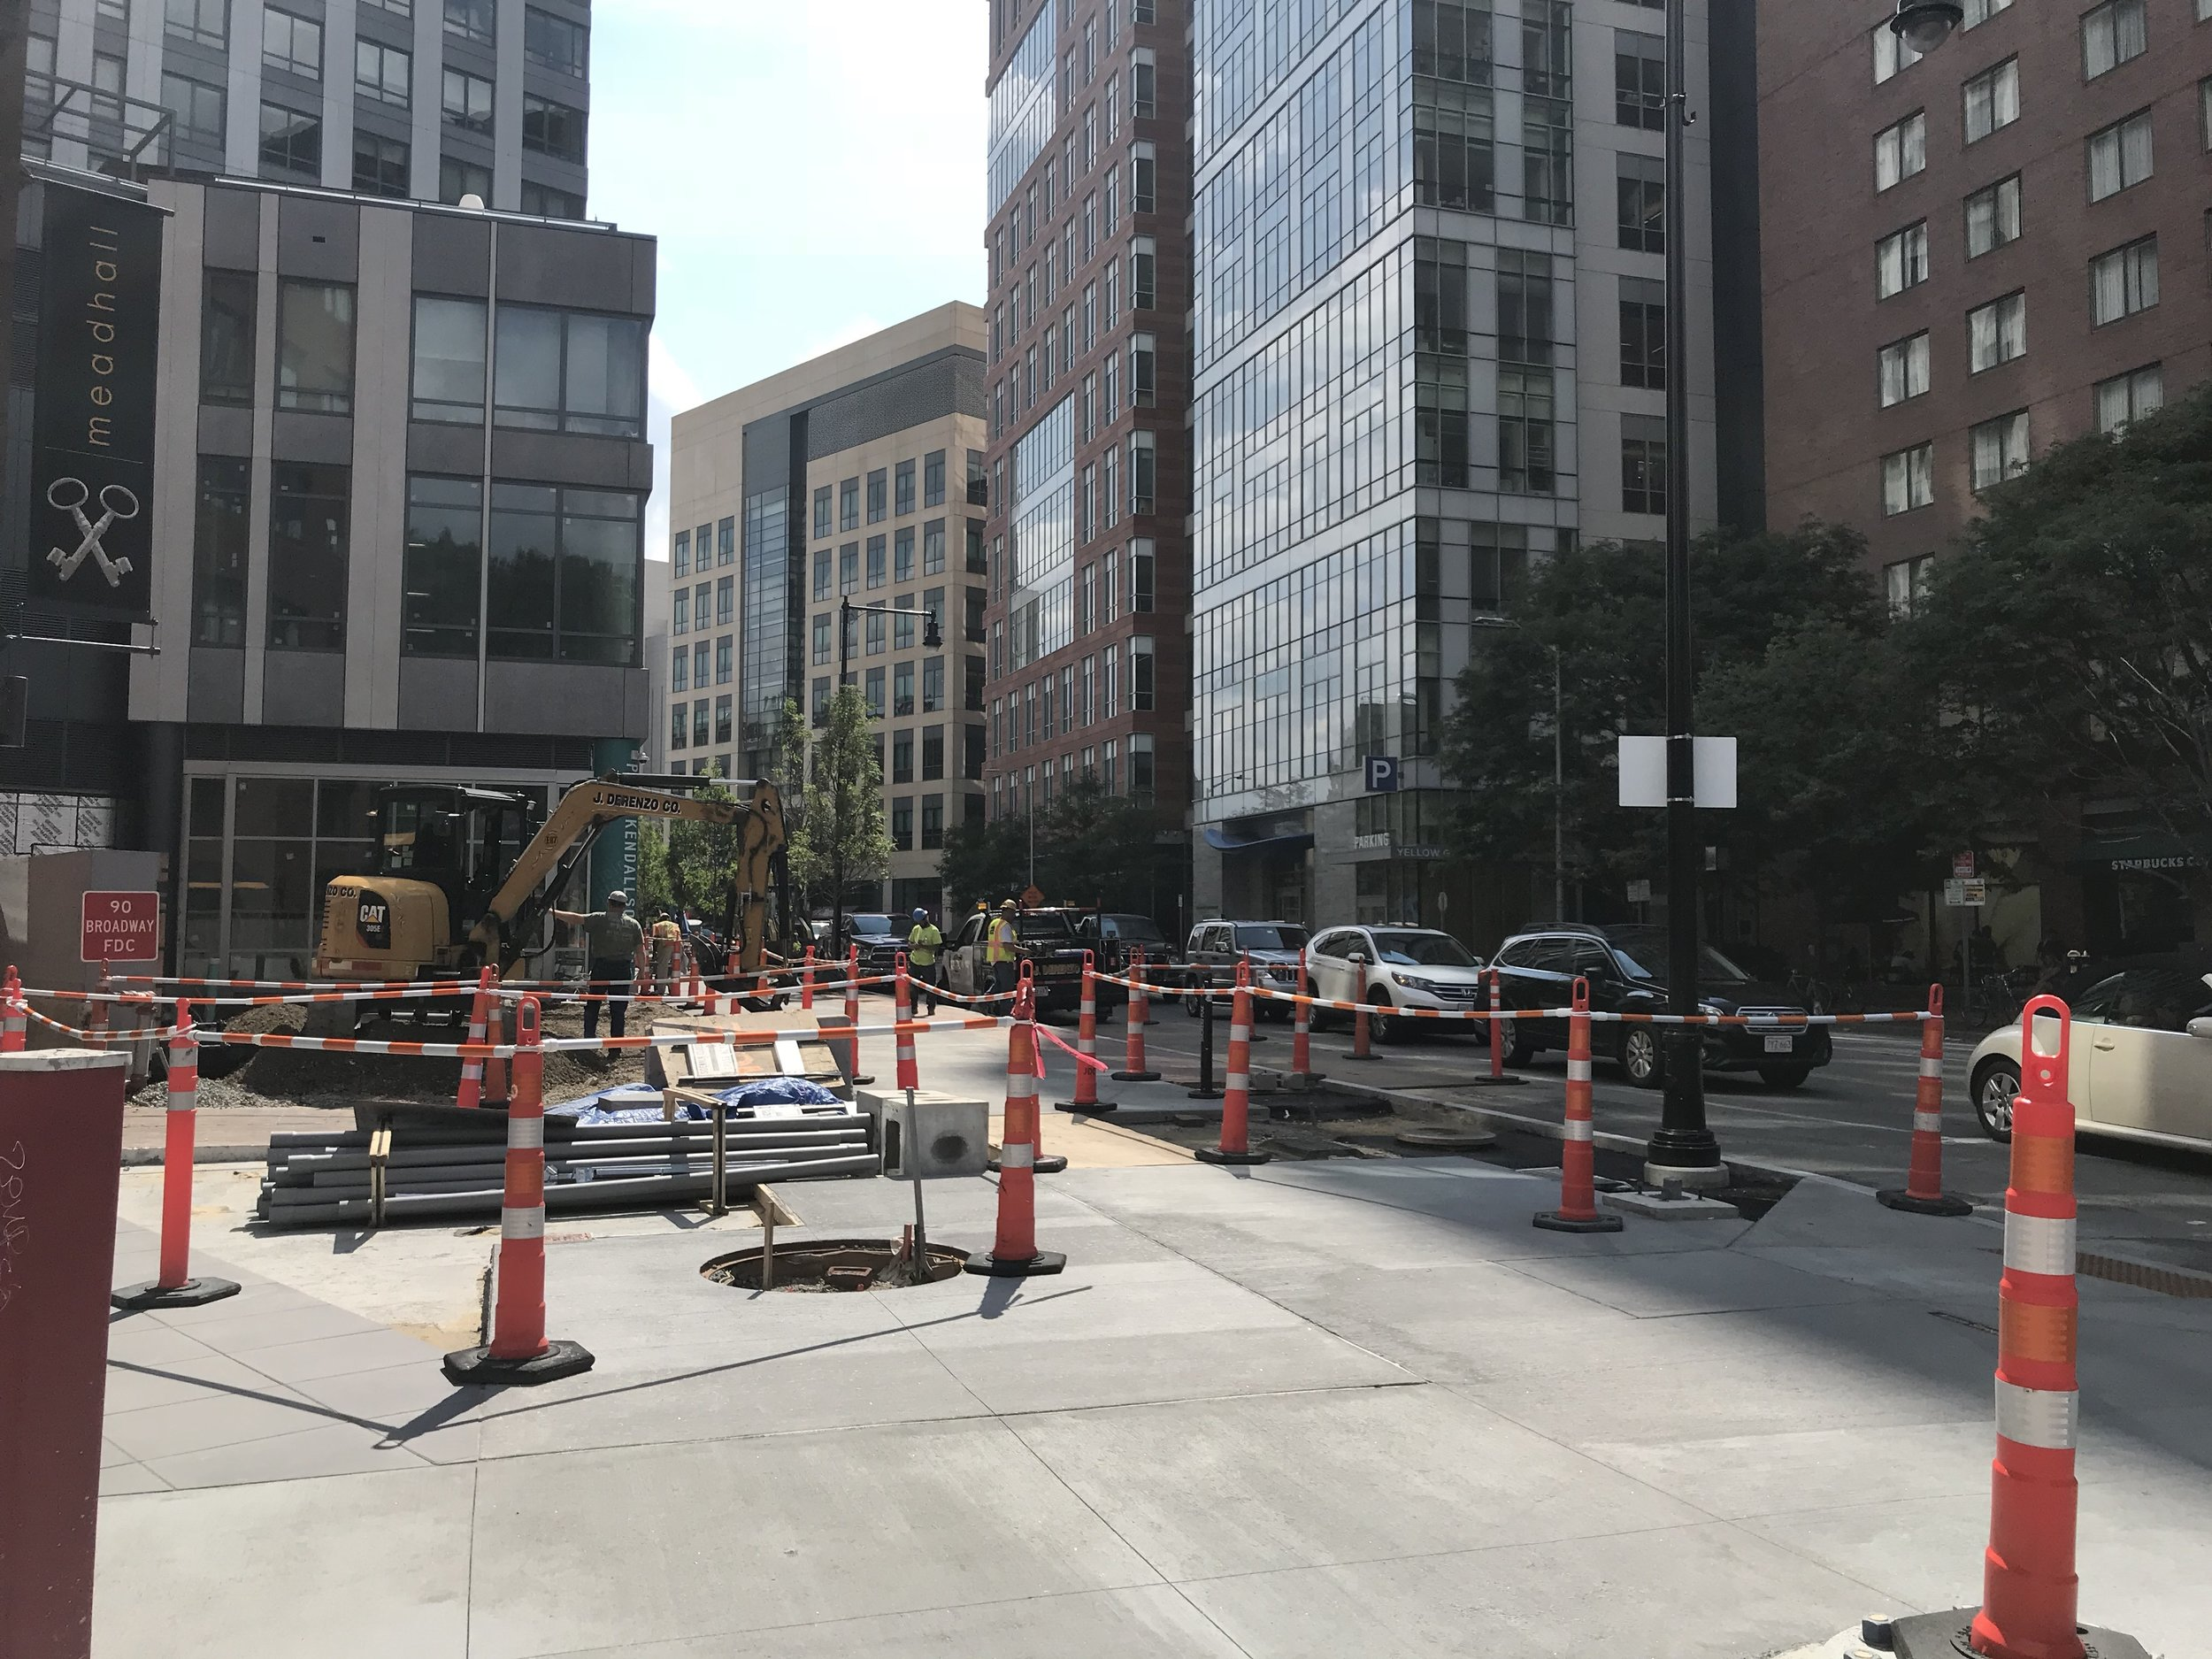 Ames Street construction in progress (August 2018)